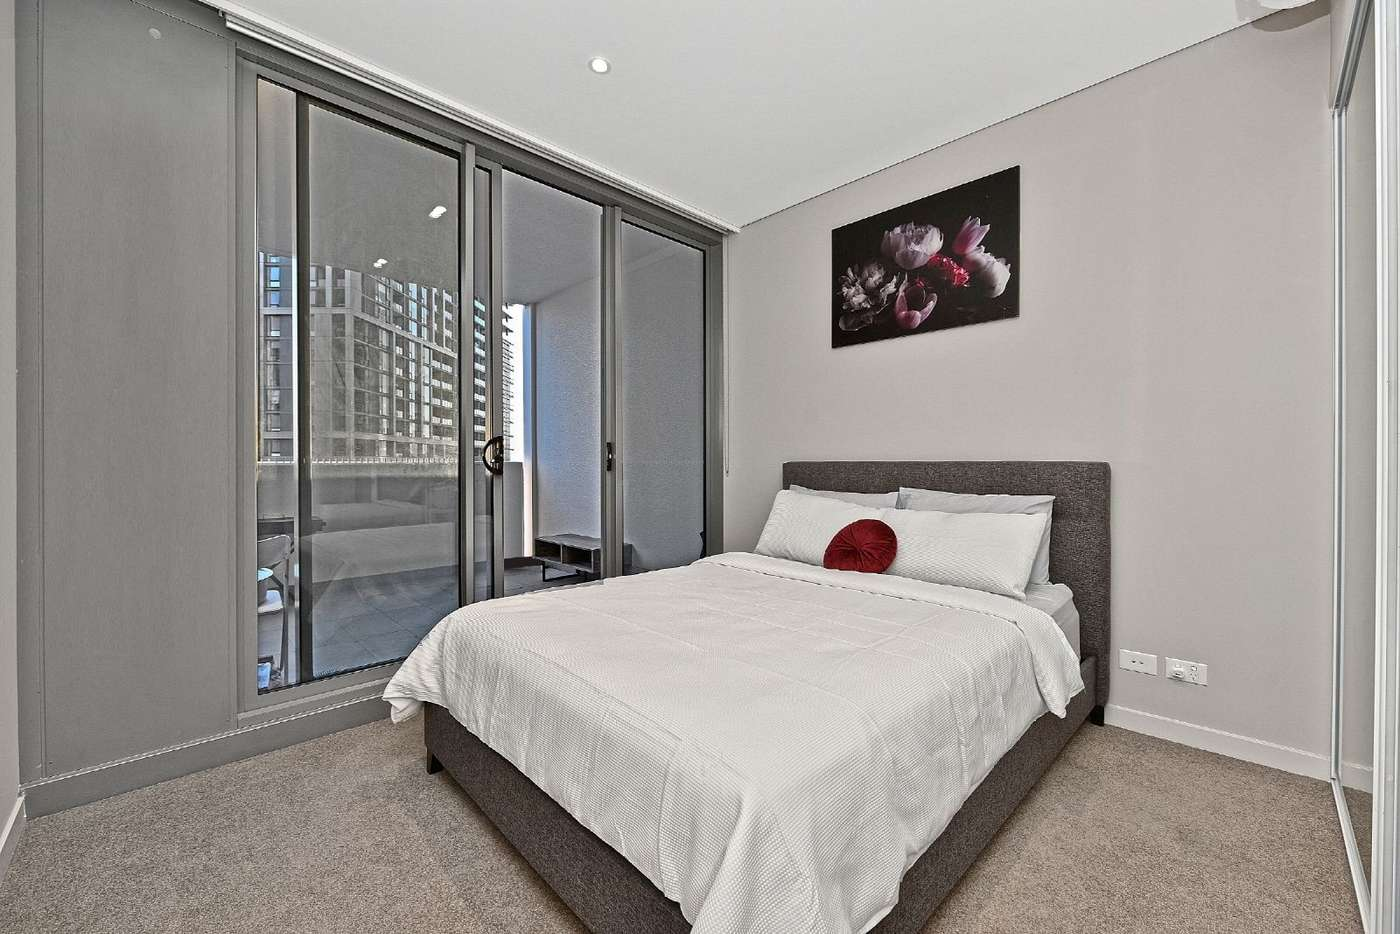 Sixth view of Homely apartment listing, 2314/18 footbridge Boulevard, Wentworth Point NSW 2127